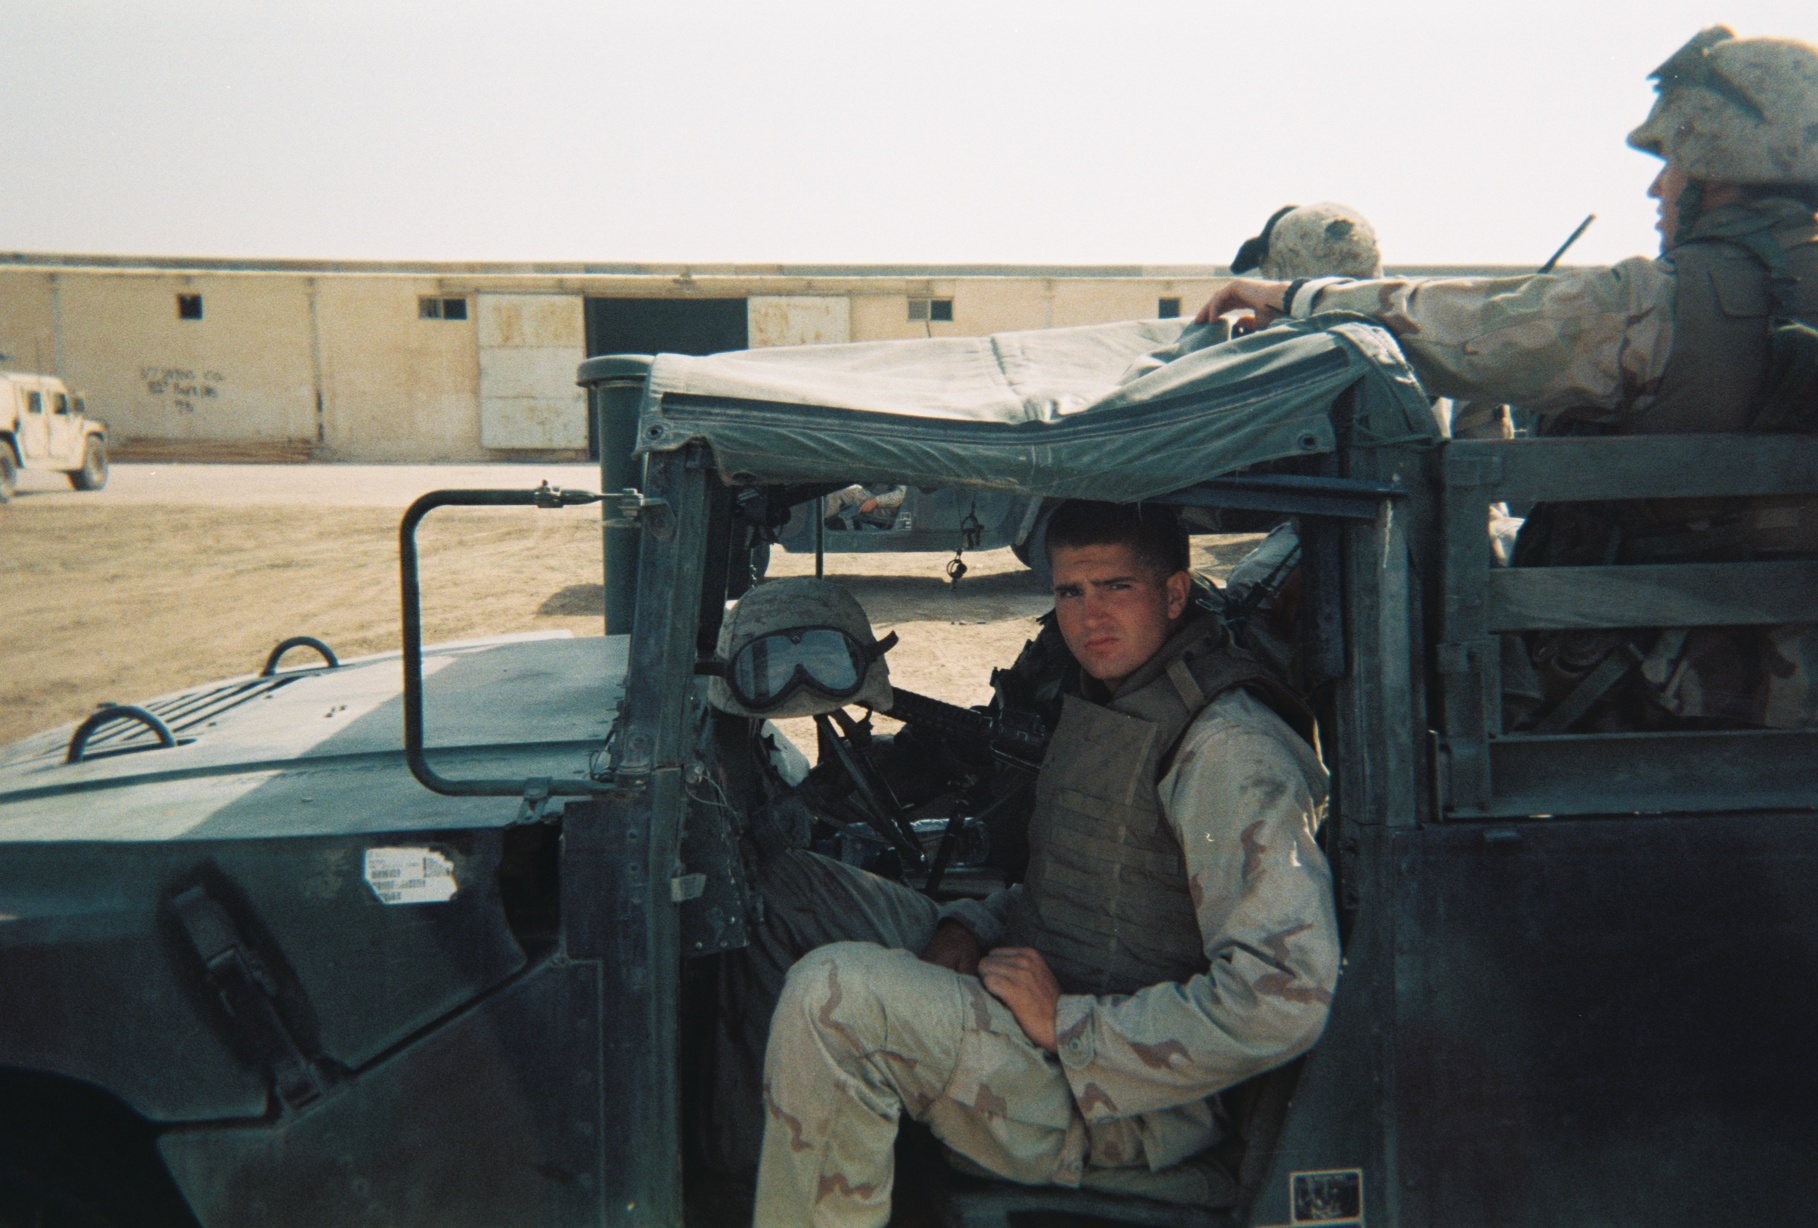 Tyson at the United States Marine Corps base in Karbala